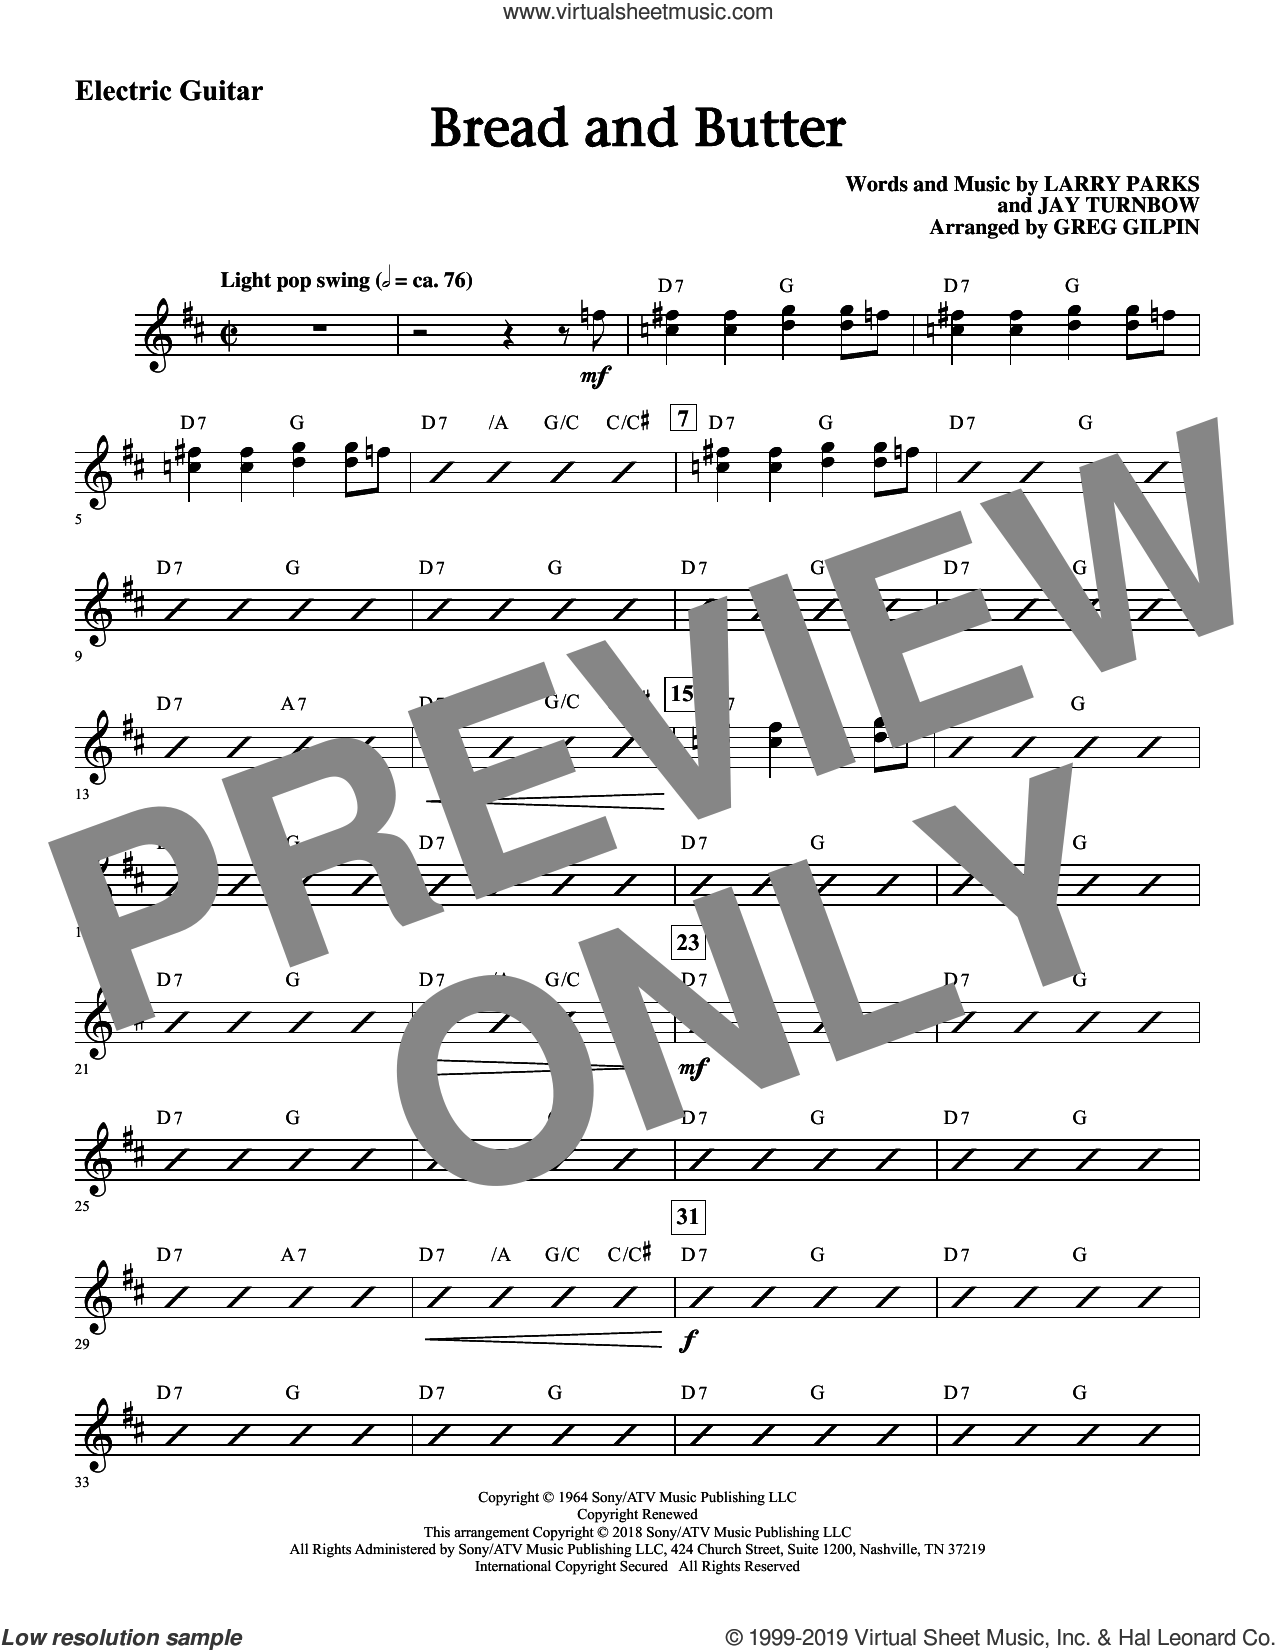 Bread and Butter (arr. Greg Gilpin) (complete set of parts) sheet music for orchestra/band by Newbeats, Jay Turnbow, Larry Parks and Larry Parks & Jay Turnbow, intermediate skill level